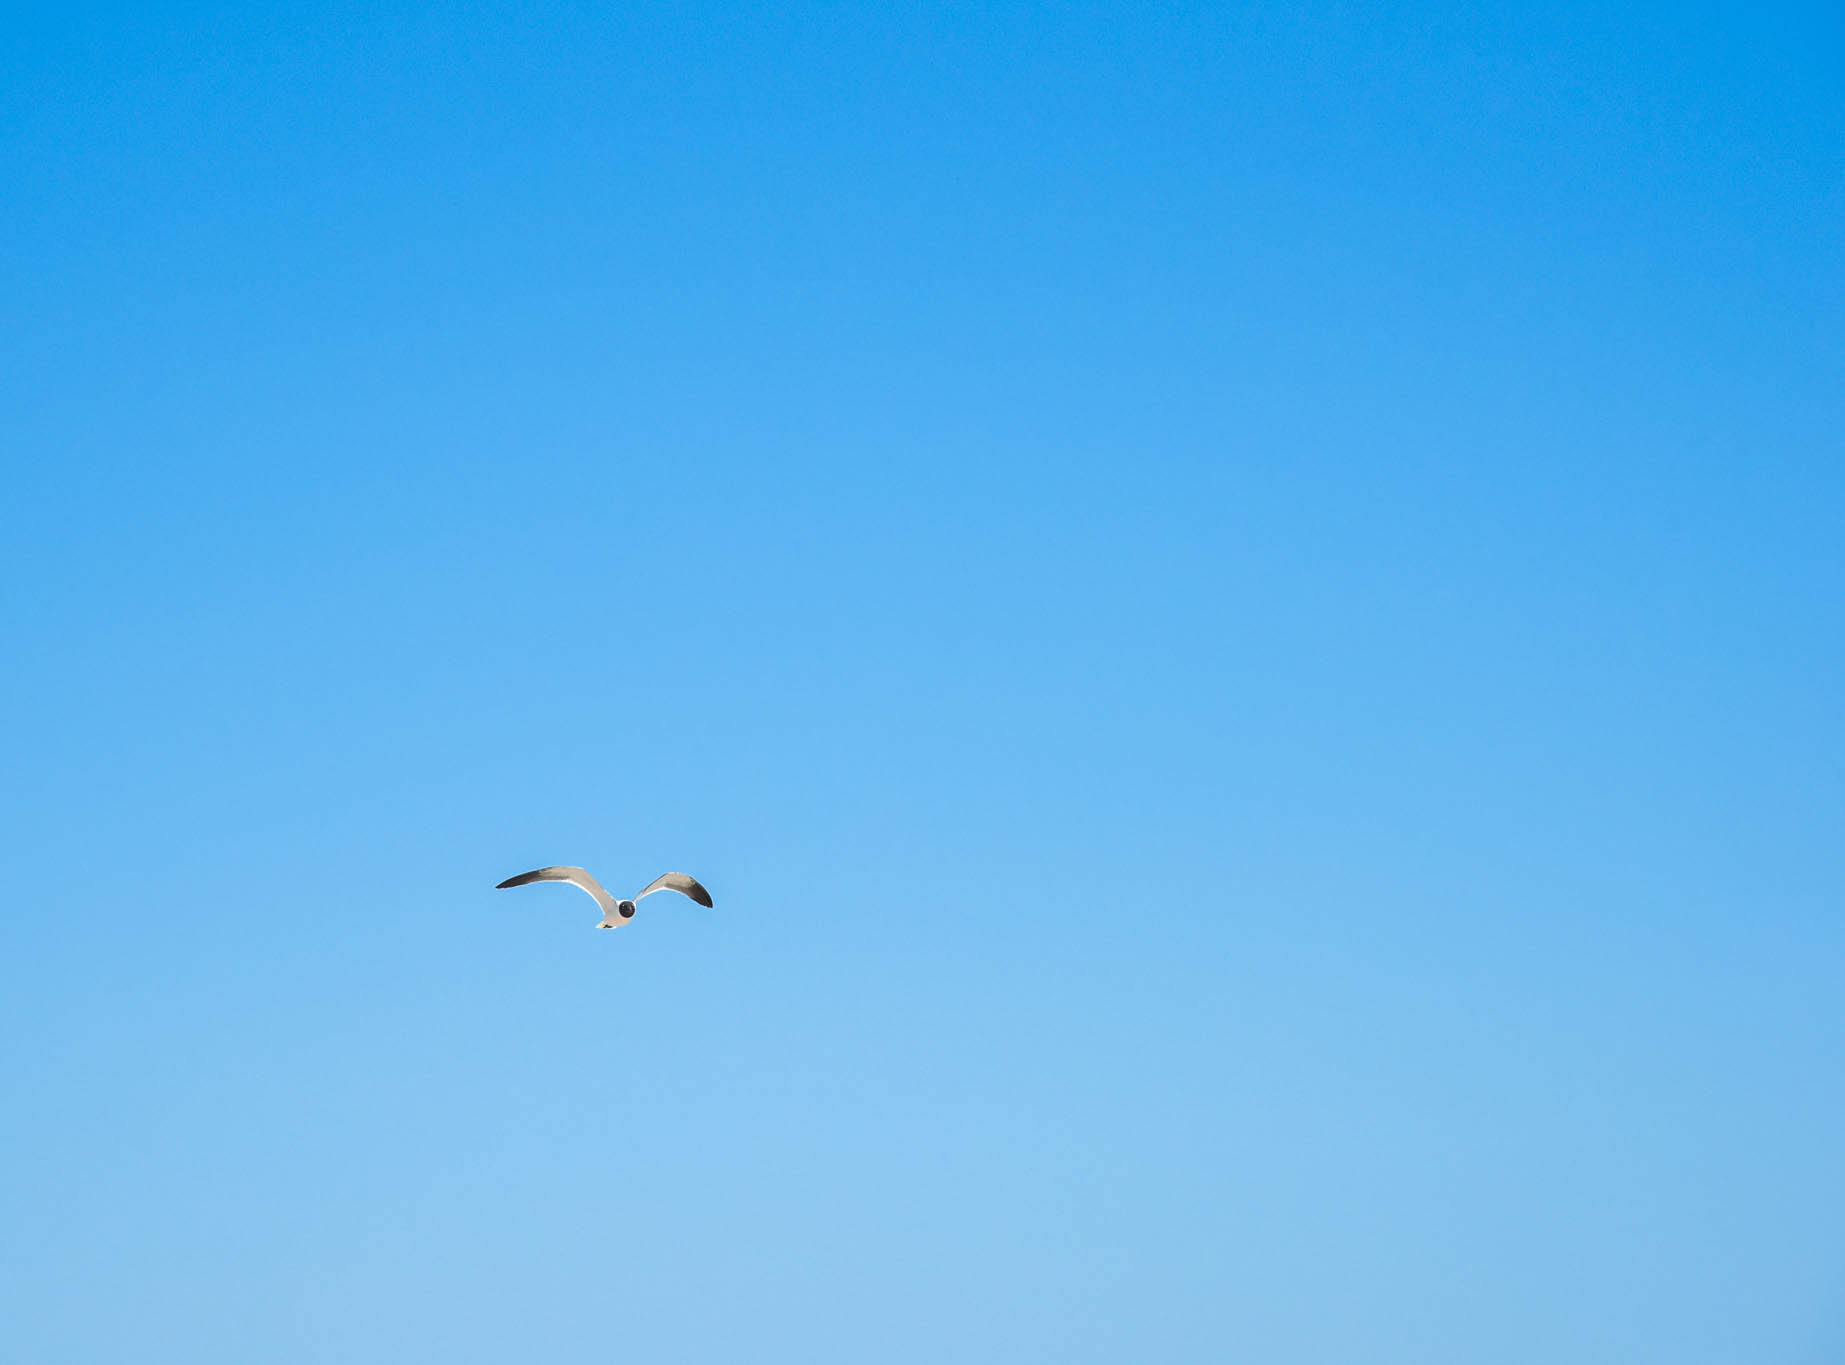 Looking up at a seagull